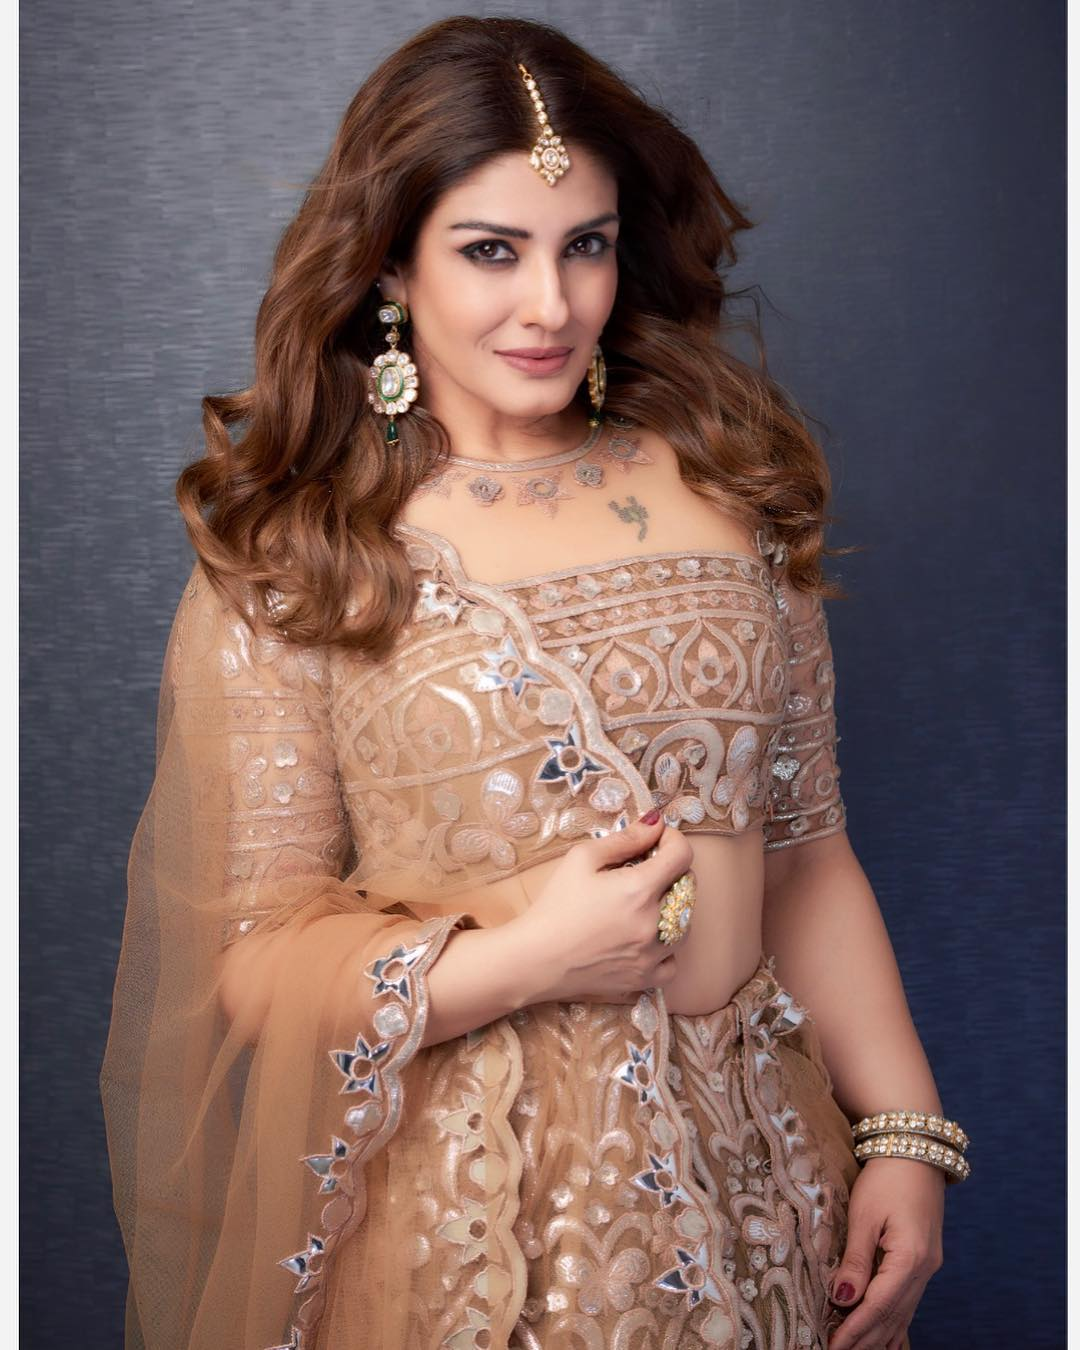 Image instagrammed by Raveena Tandon